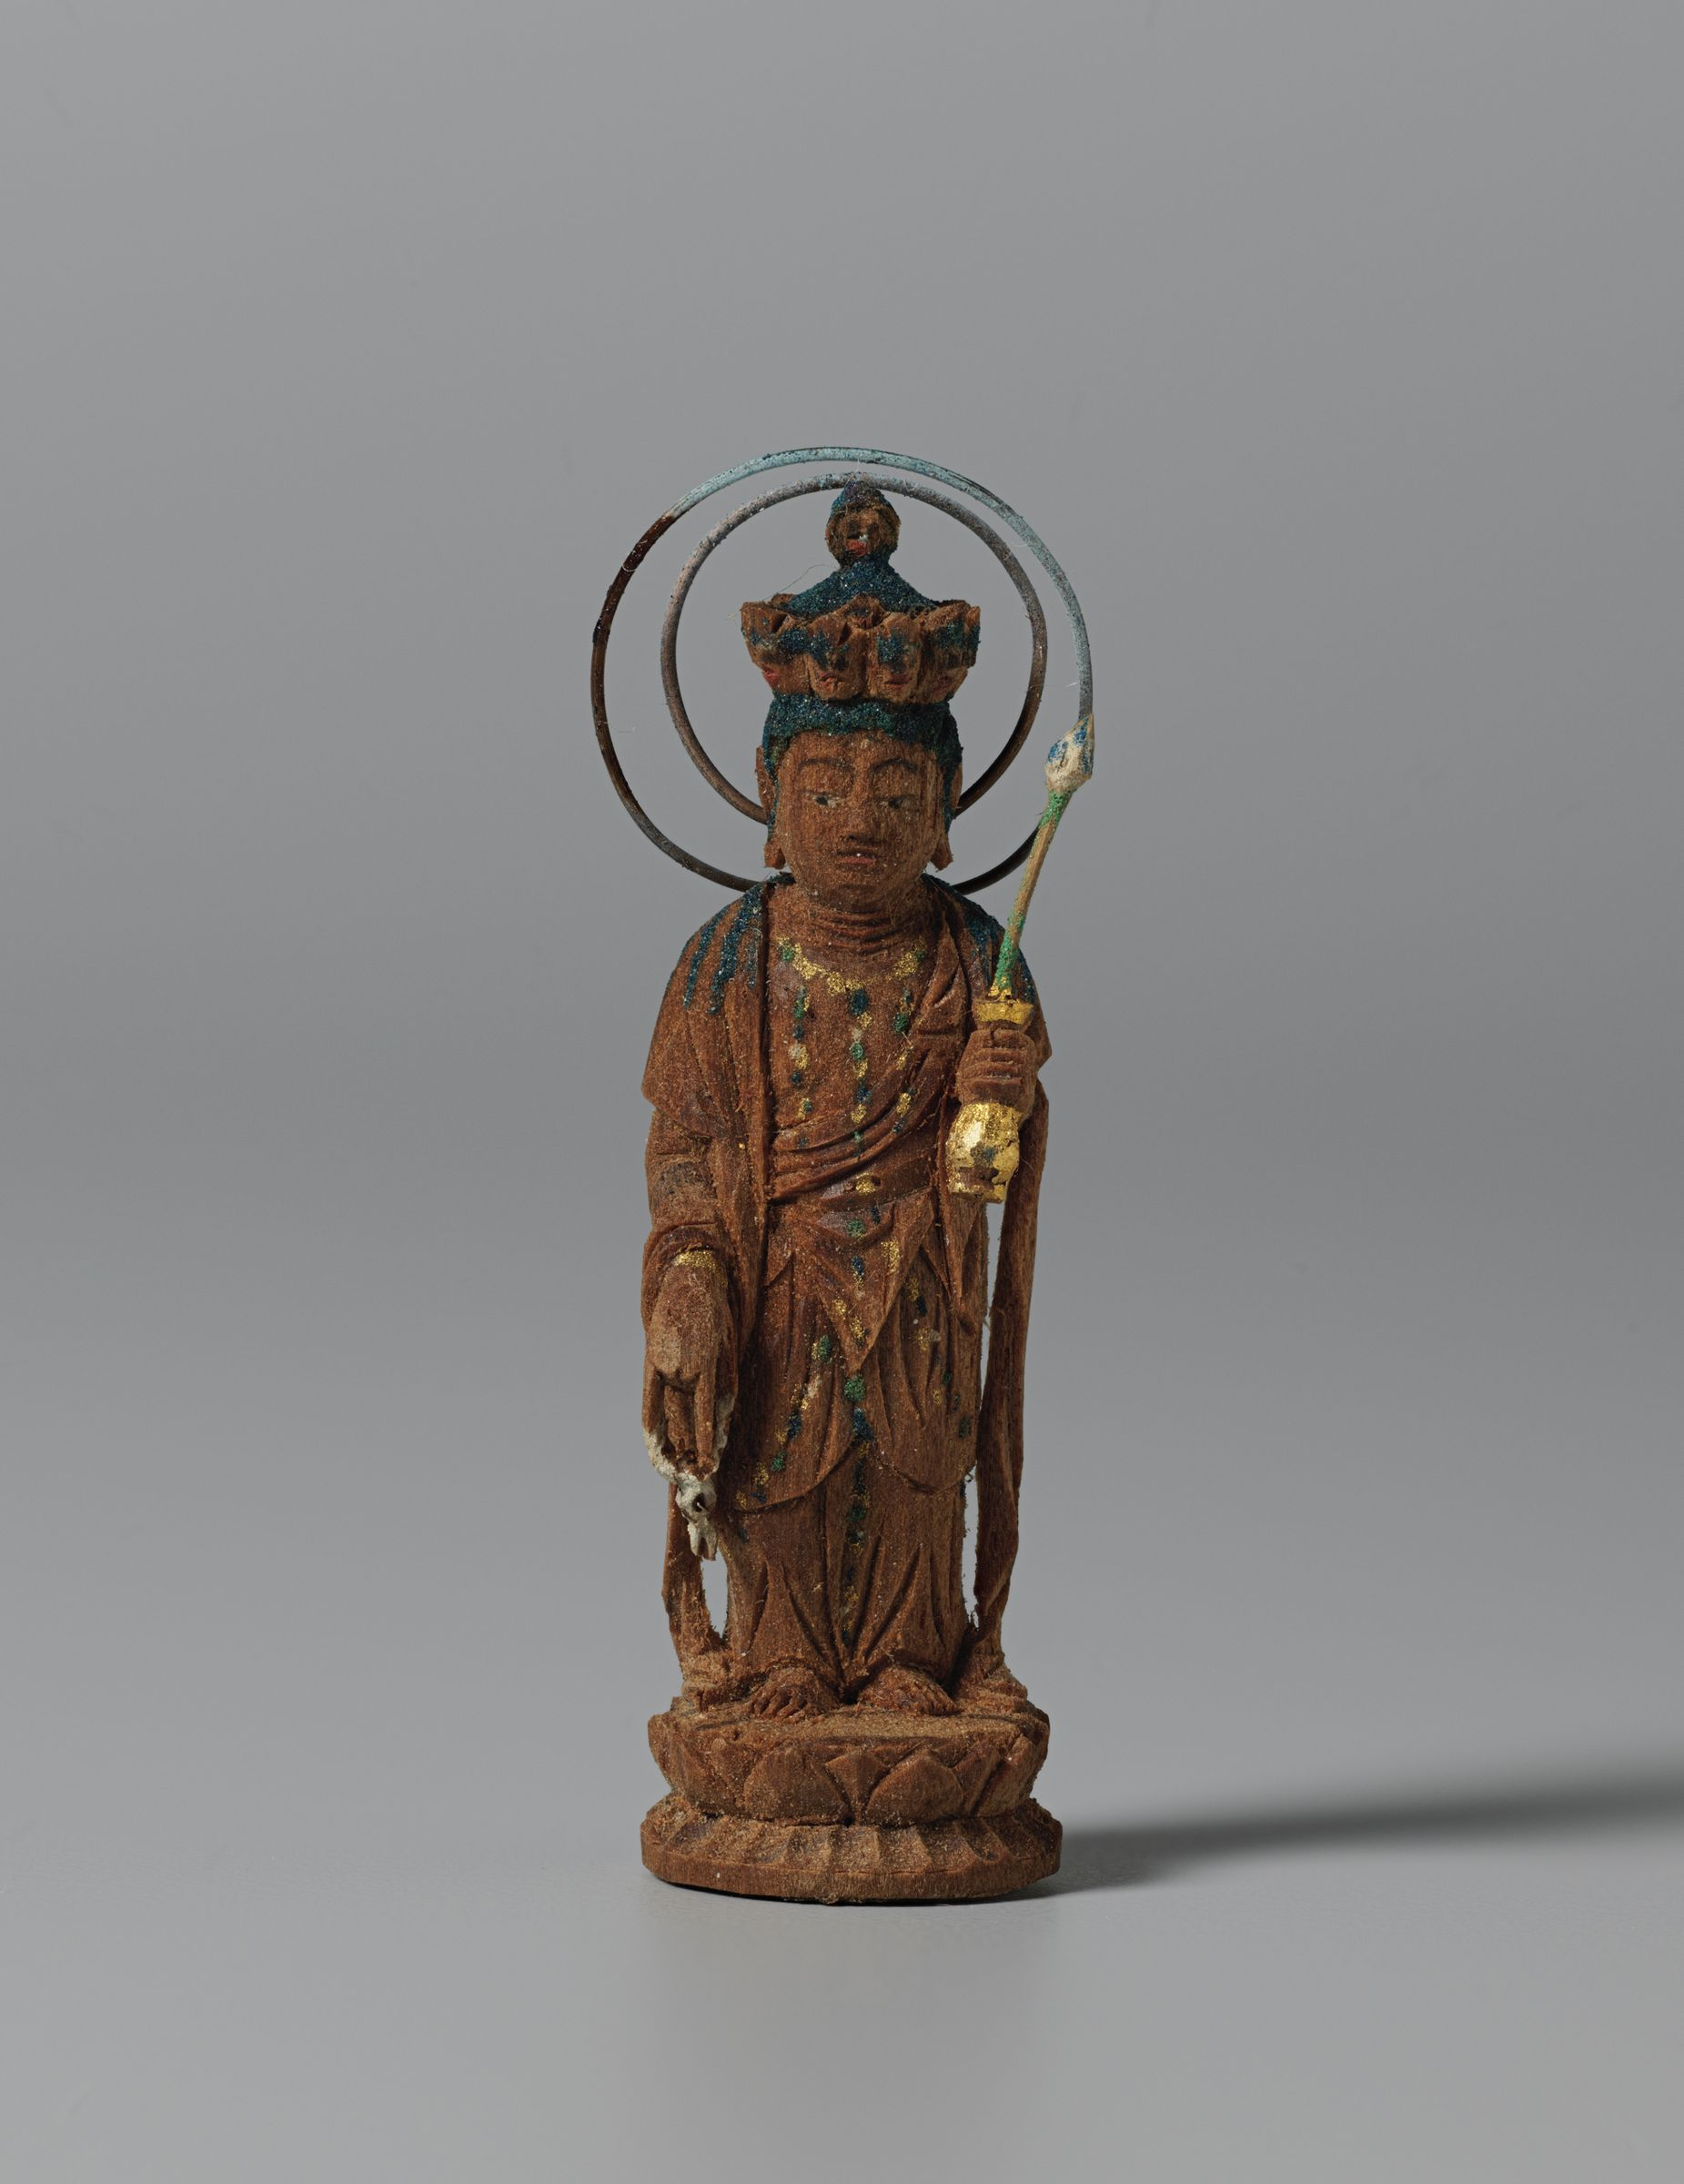 Small Image Of Eleven-Headed Avalokitesvara Bodhisattva (Japanese: Jūichimen Kannon) In A Cylindrical Shrine